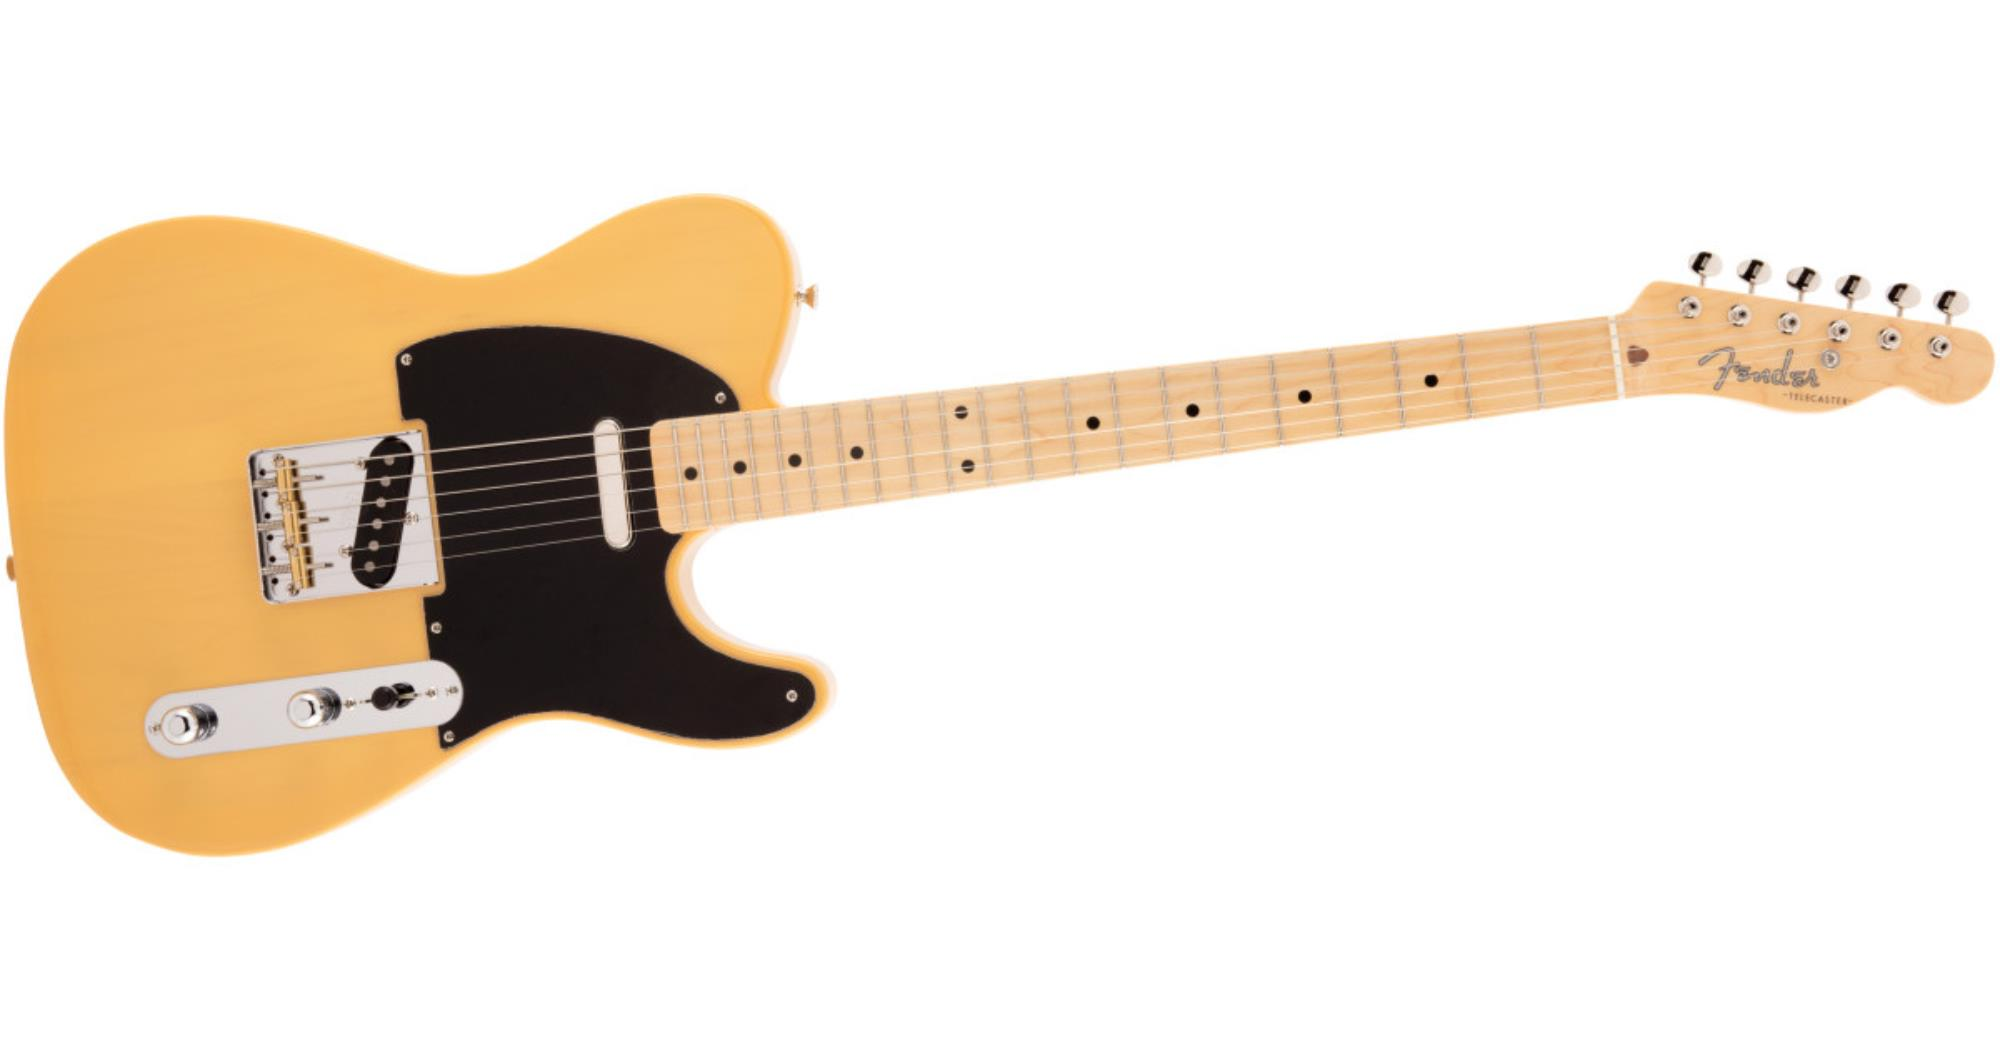 FENDER-Traditional-50s-Telecaster-MN-Butterscotch-Blonde-Made-in-Japan-5360102350-sku-24688